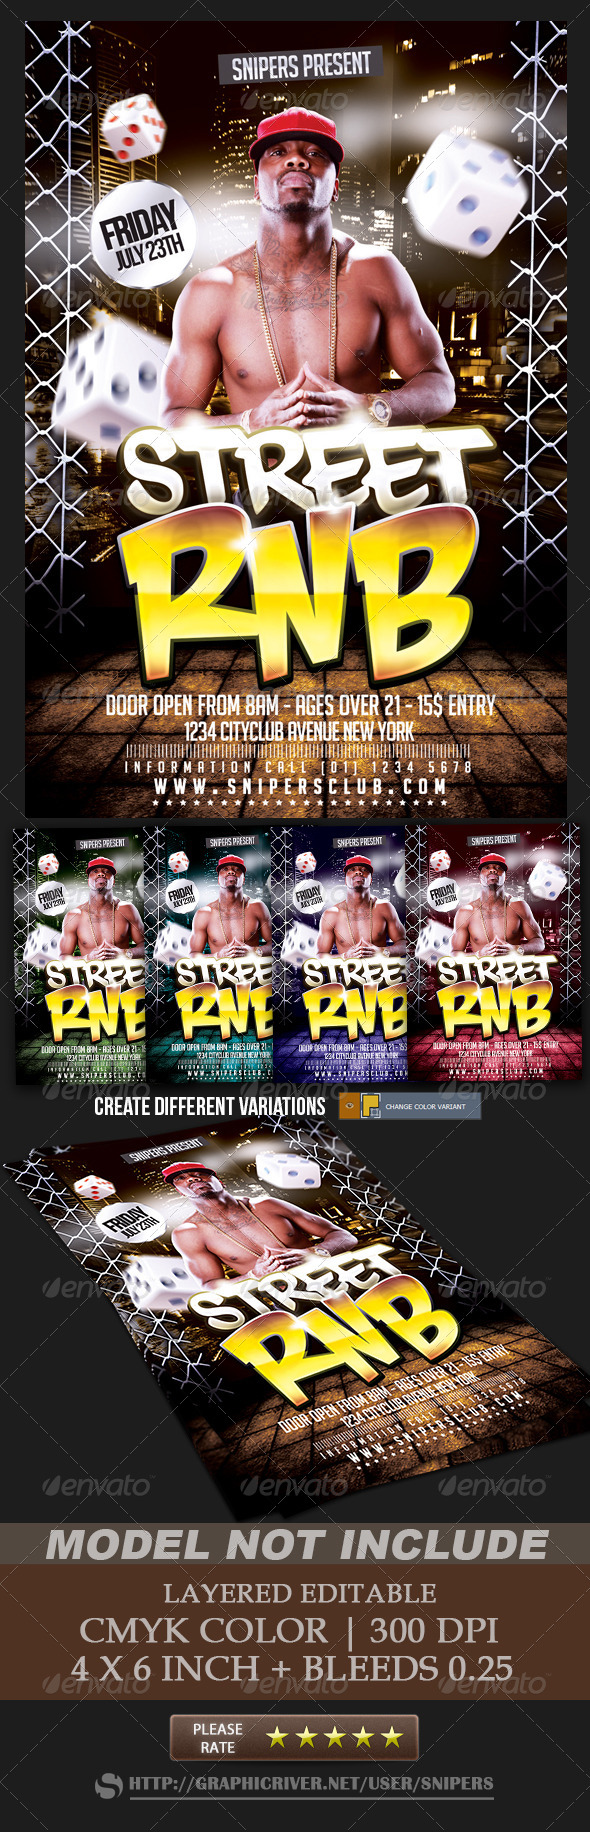 DOWNLOAD :: https://realistic.photos/article-itmid-1008233668i.html ... Street RnB ...  Snipers, black, community, design, event, flyer, grunge, hiphop, man, music, party, psd, r and b, rnb, street, template  ... Templates, Textures, Stock Photography, Creative Design, Infographics, Vectors, Print, Webdesign, Web Elements, Graphics, Wordpress Themes, eCommerce ... DOWNLOAD :: https://realistic.photos/article-itmid-1008233668i.html